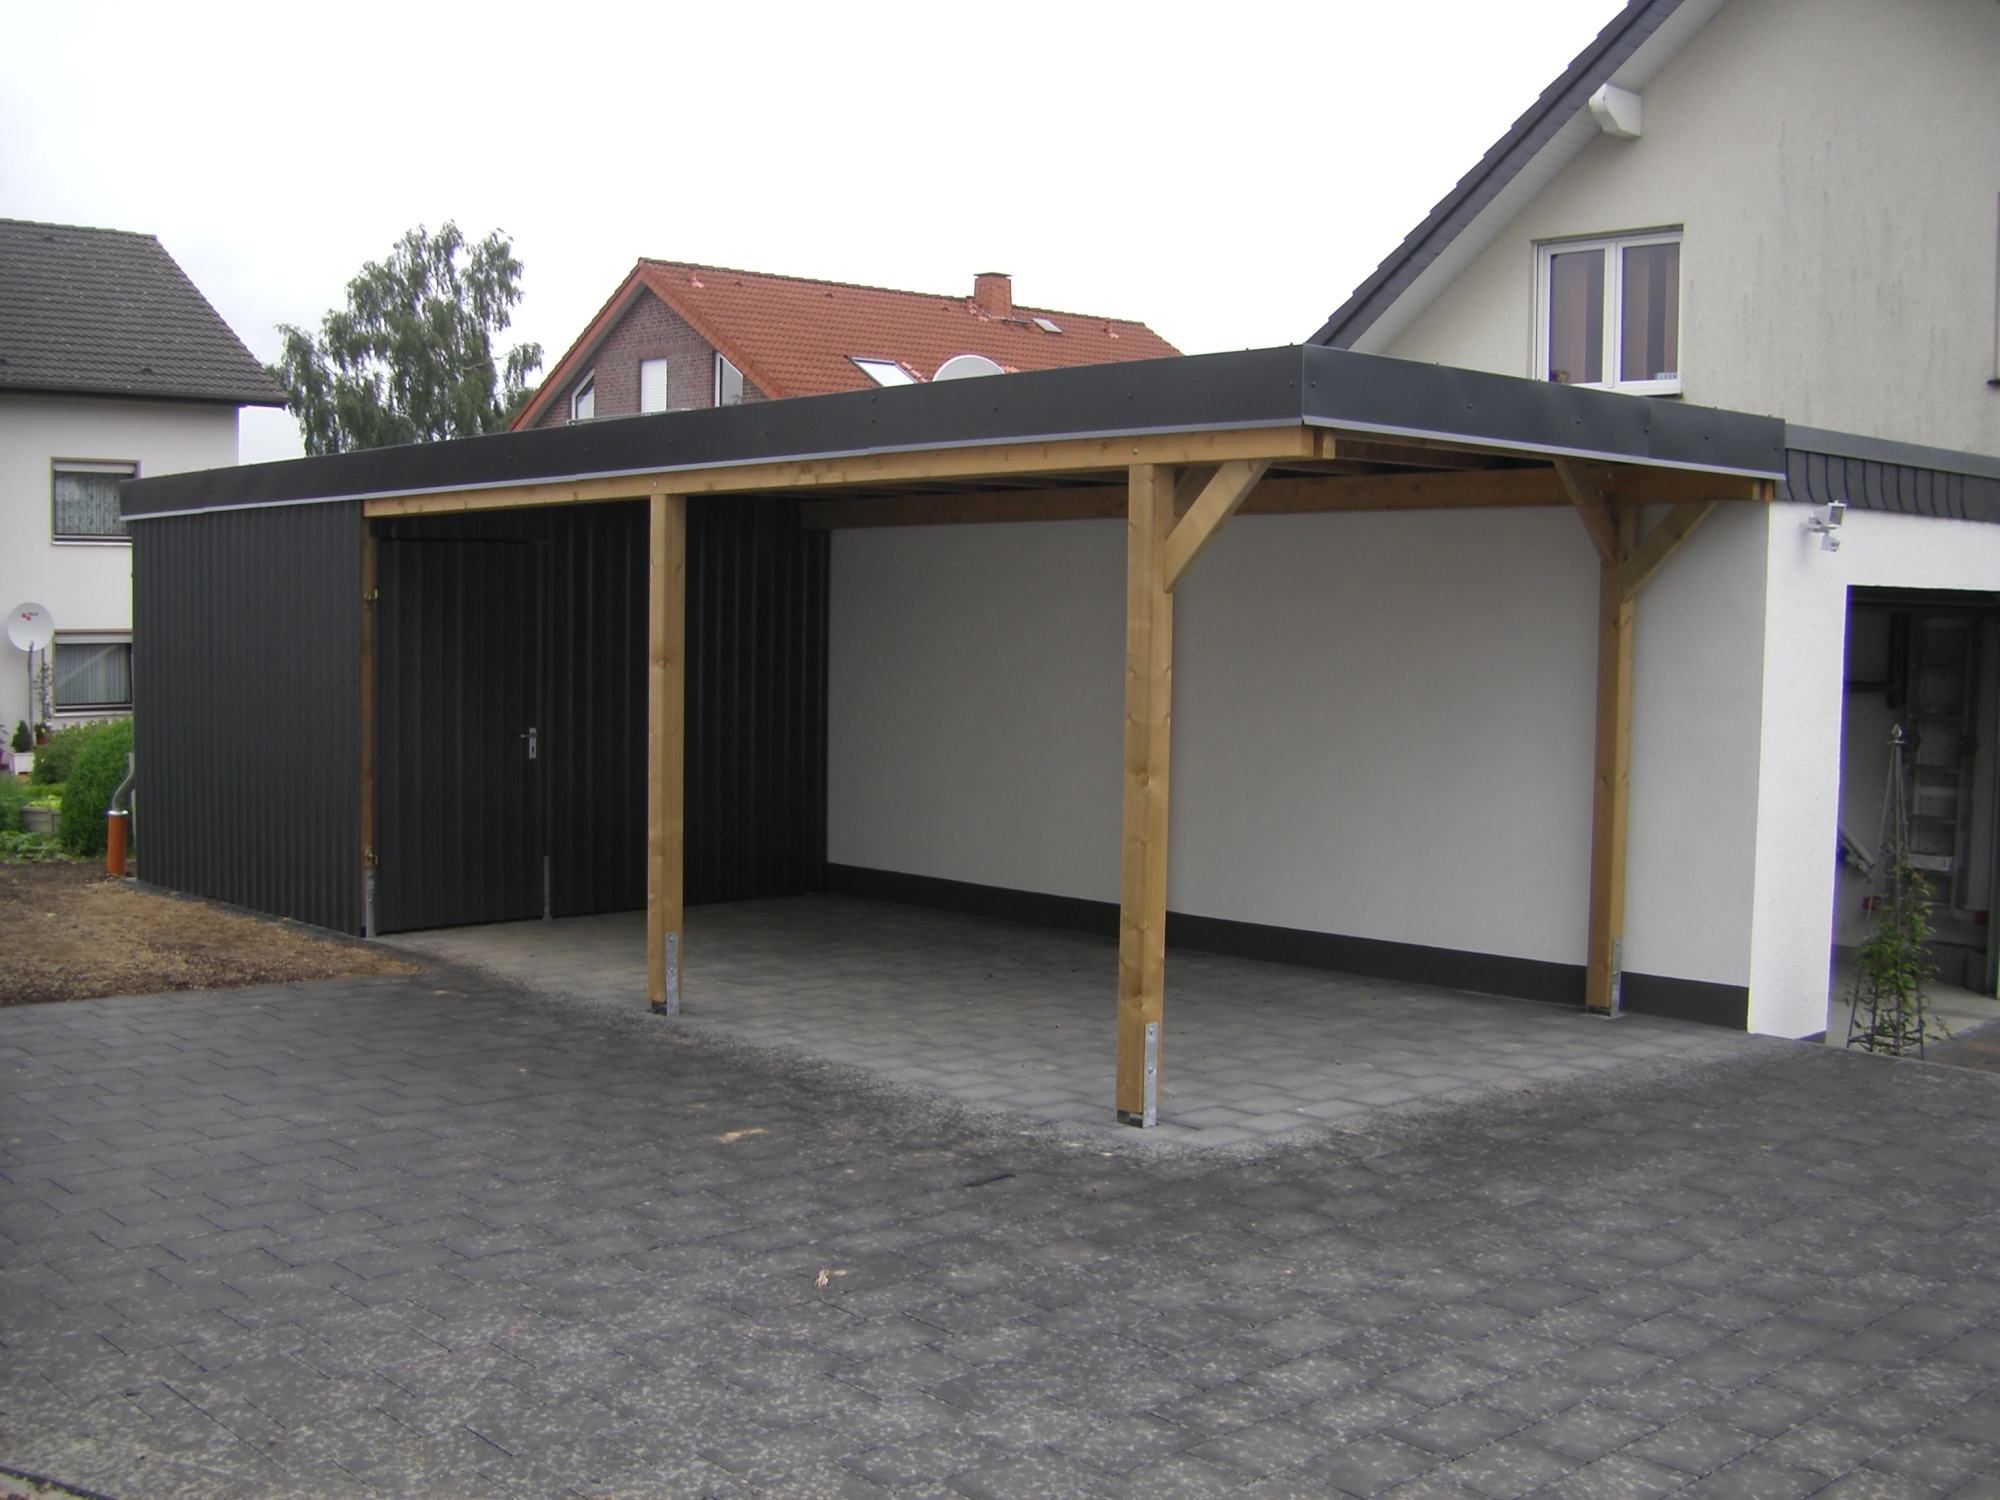 Garage Und Carport Kombination Carport Garage Kombination Holz Simple Hochwertige Und Carports